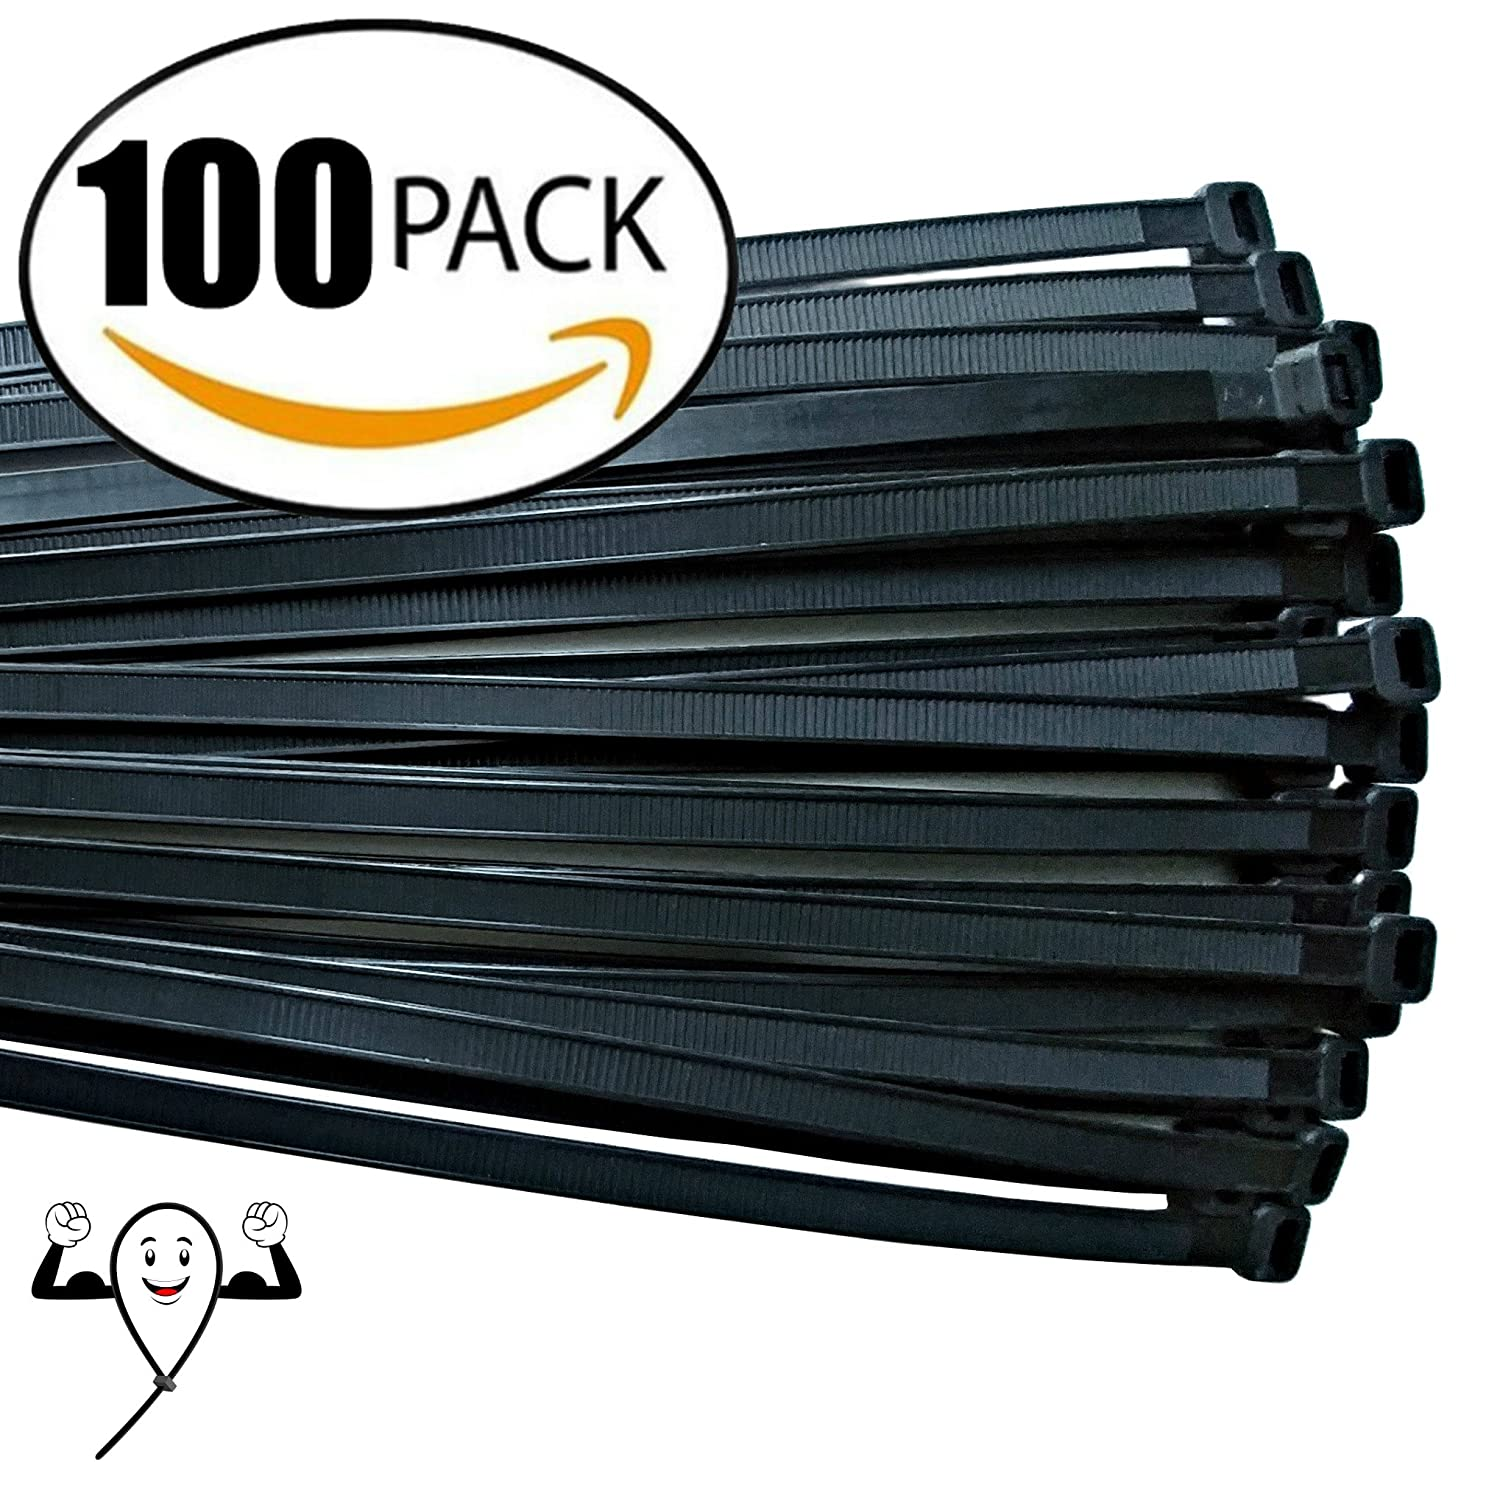 Cable ties 18 inch Thick Premium Heavy Duty. 100 Piece Value Pack of Black Nylon Wire Zip Ties by Strong Ties. 175 Pounds Tensile Strength Indoor Outdoor UV Resistant.